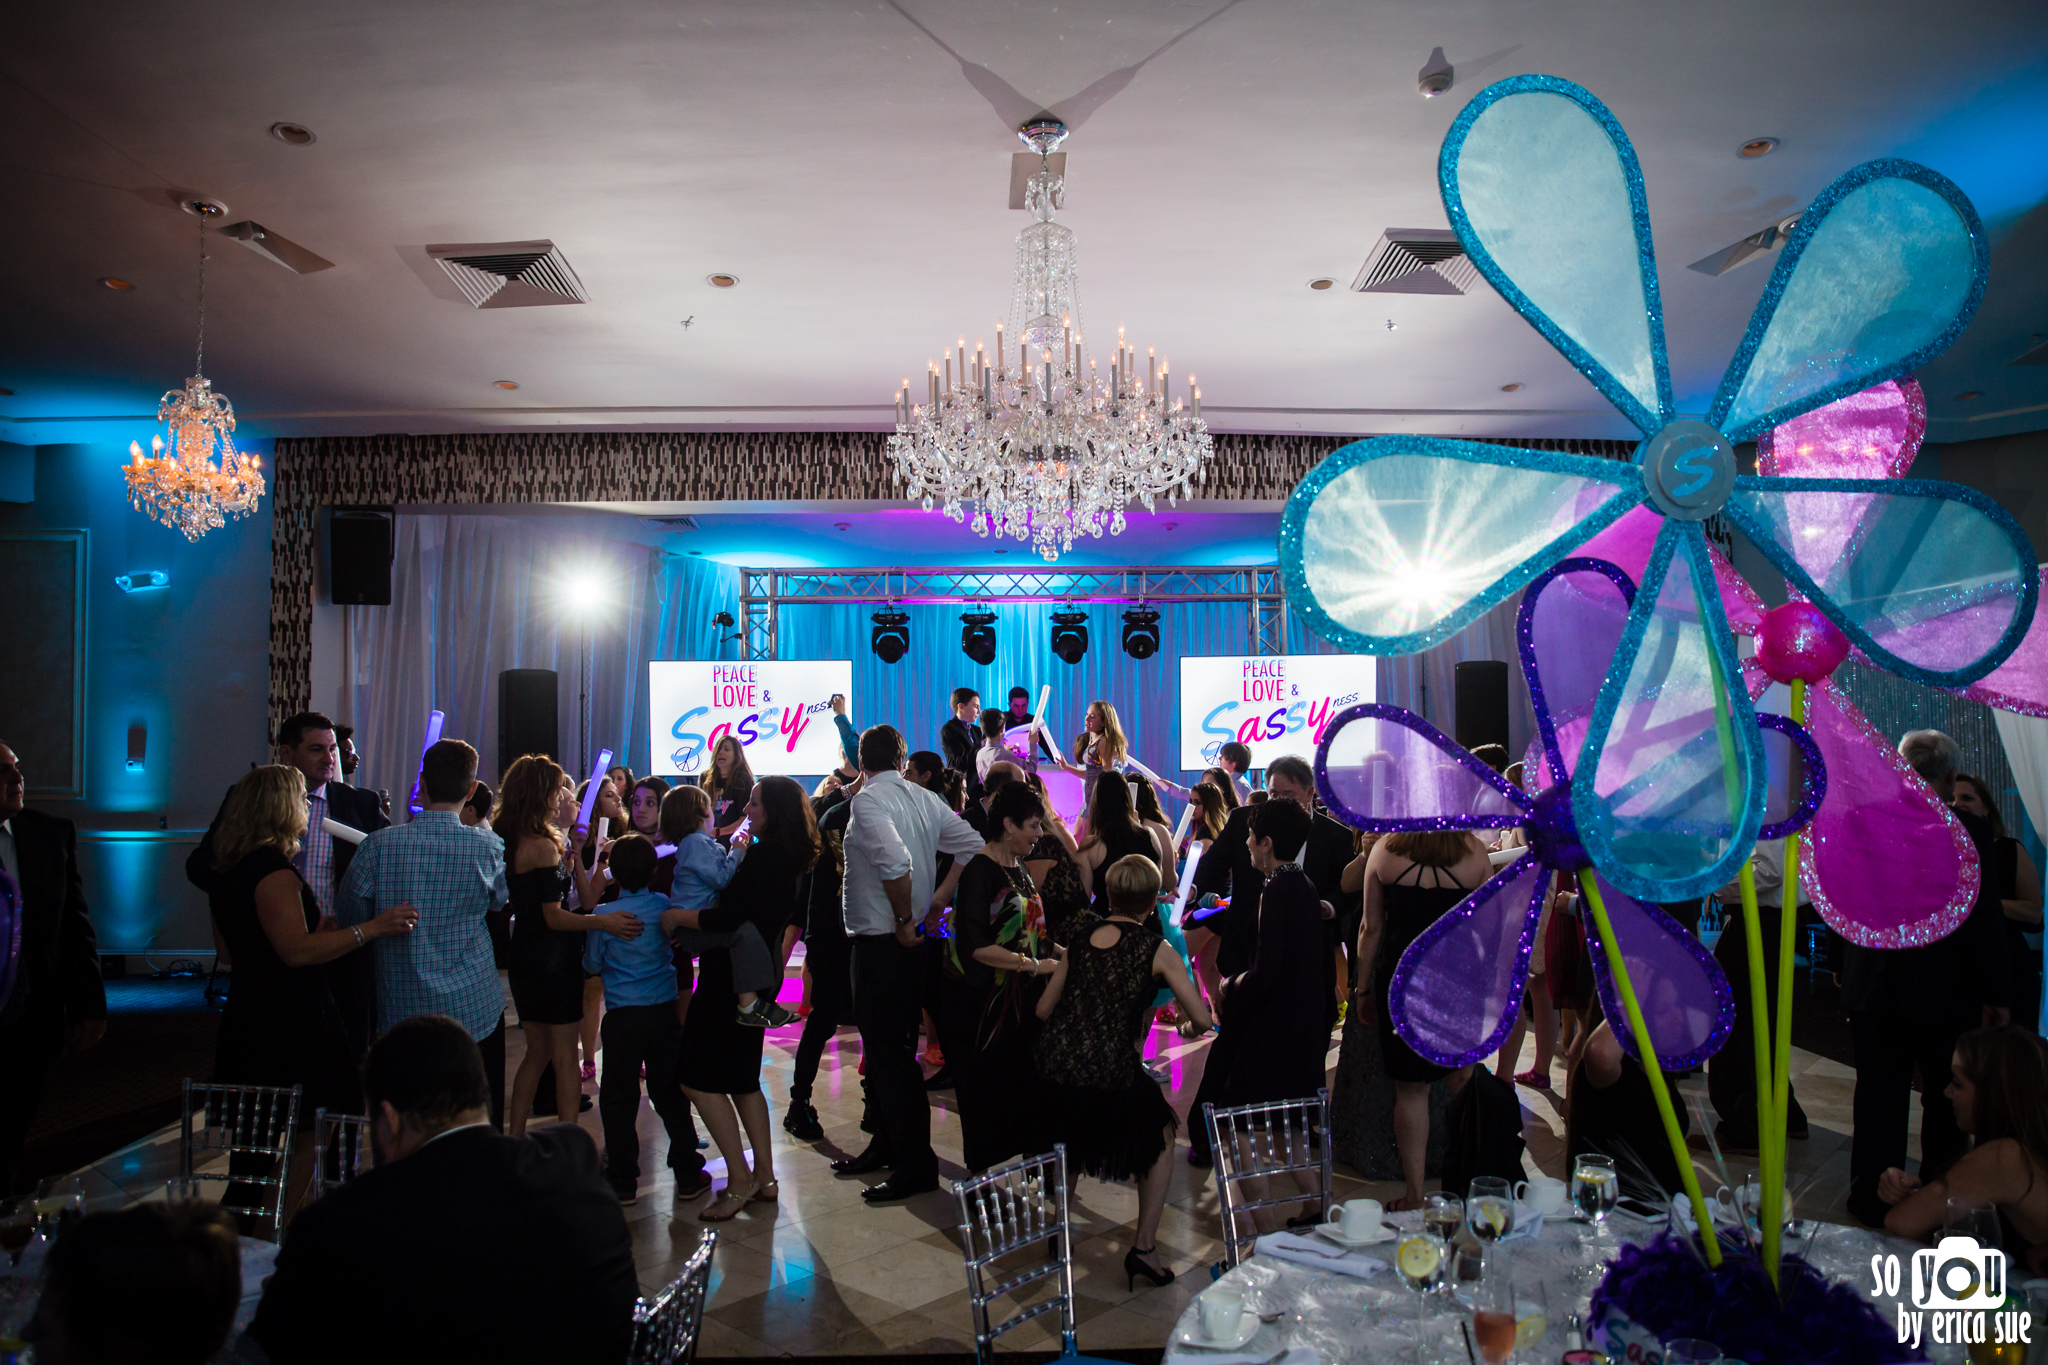 bat-mitzvah-photography-south-florida-broward-kol-ami-plantation-so-you-by-erica-sue-4324.jpg